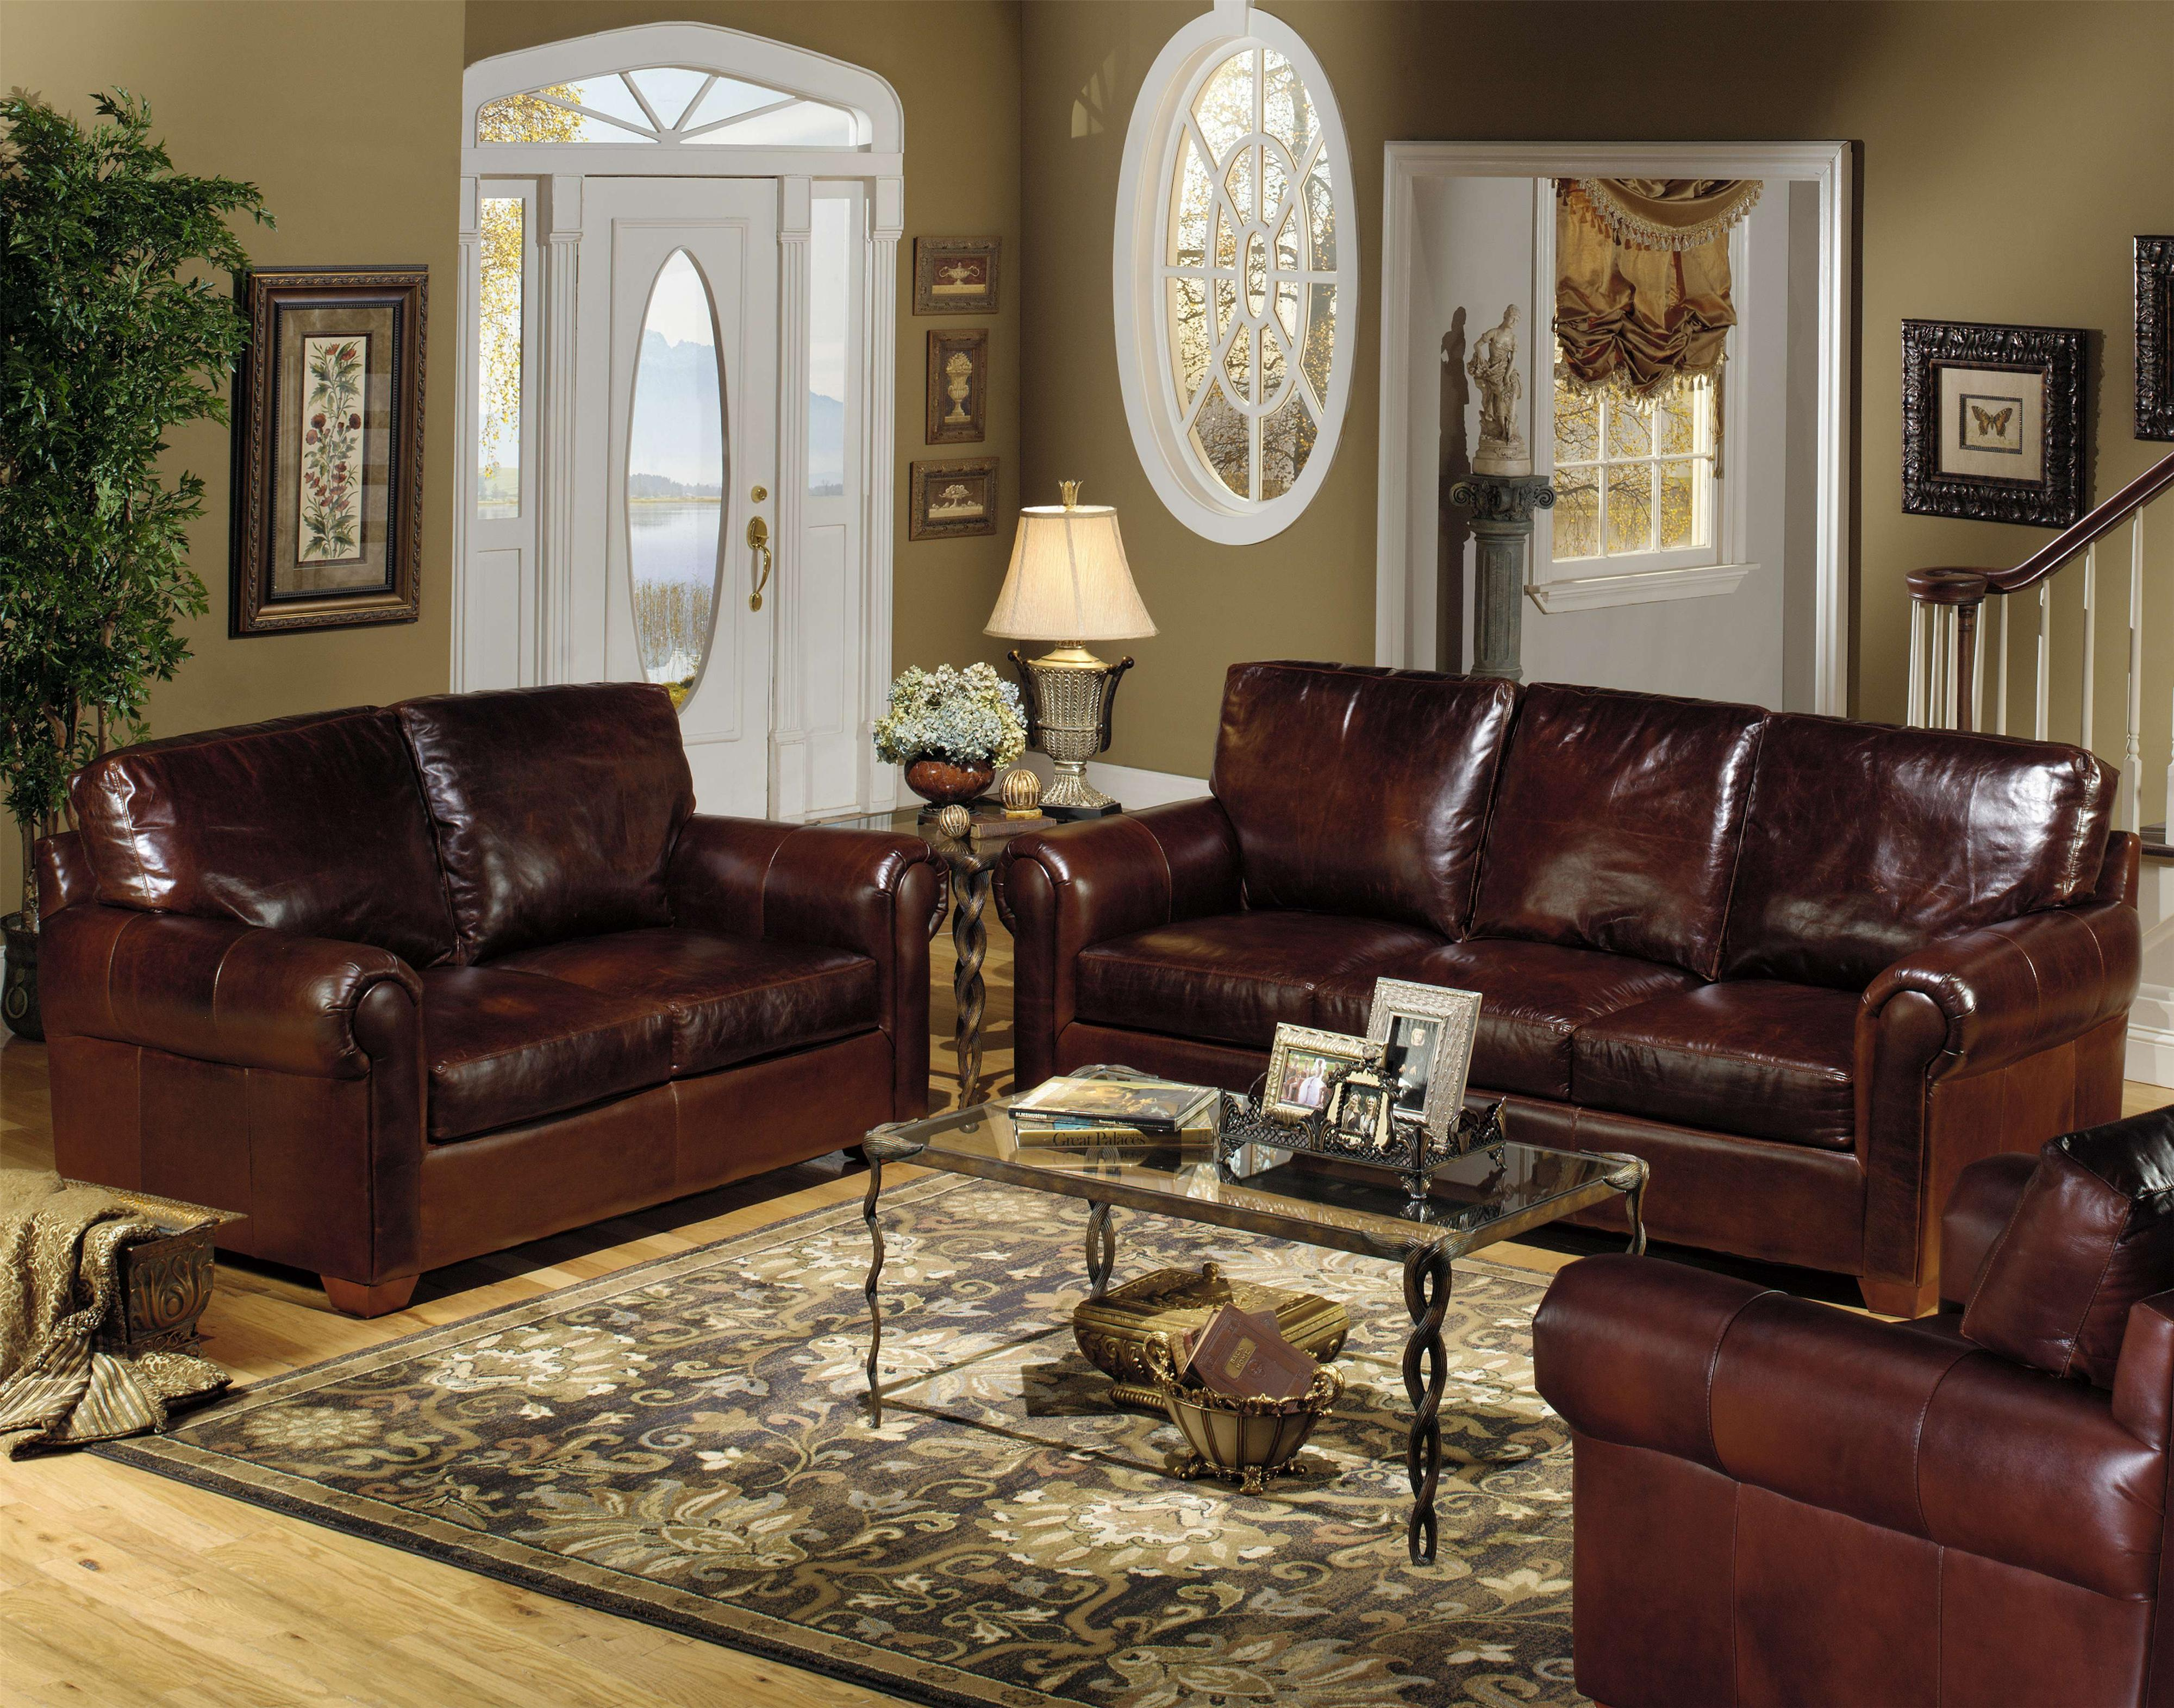 USA Premium Leather USA Premium Leather 8955 Casual Leather Stationary Sofa    Wilson s Furniture   Sofa Bellingham  Ferndale  Lynden  and Birch  Bay Blaine   USA Premium Leather USA Premium Leather 8955 Casual Leather  . Living Room Chairs Usa. Home Design Ideas